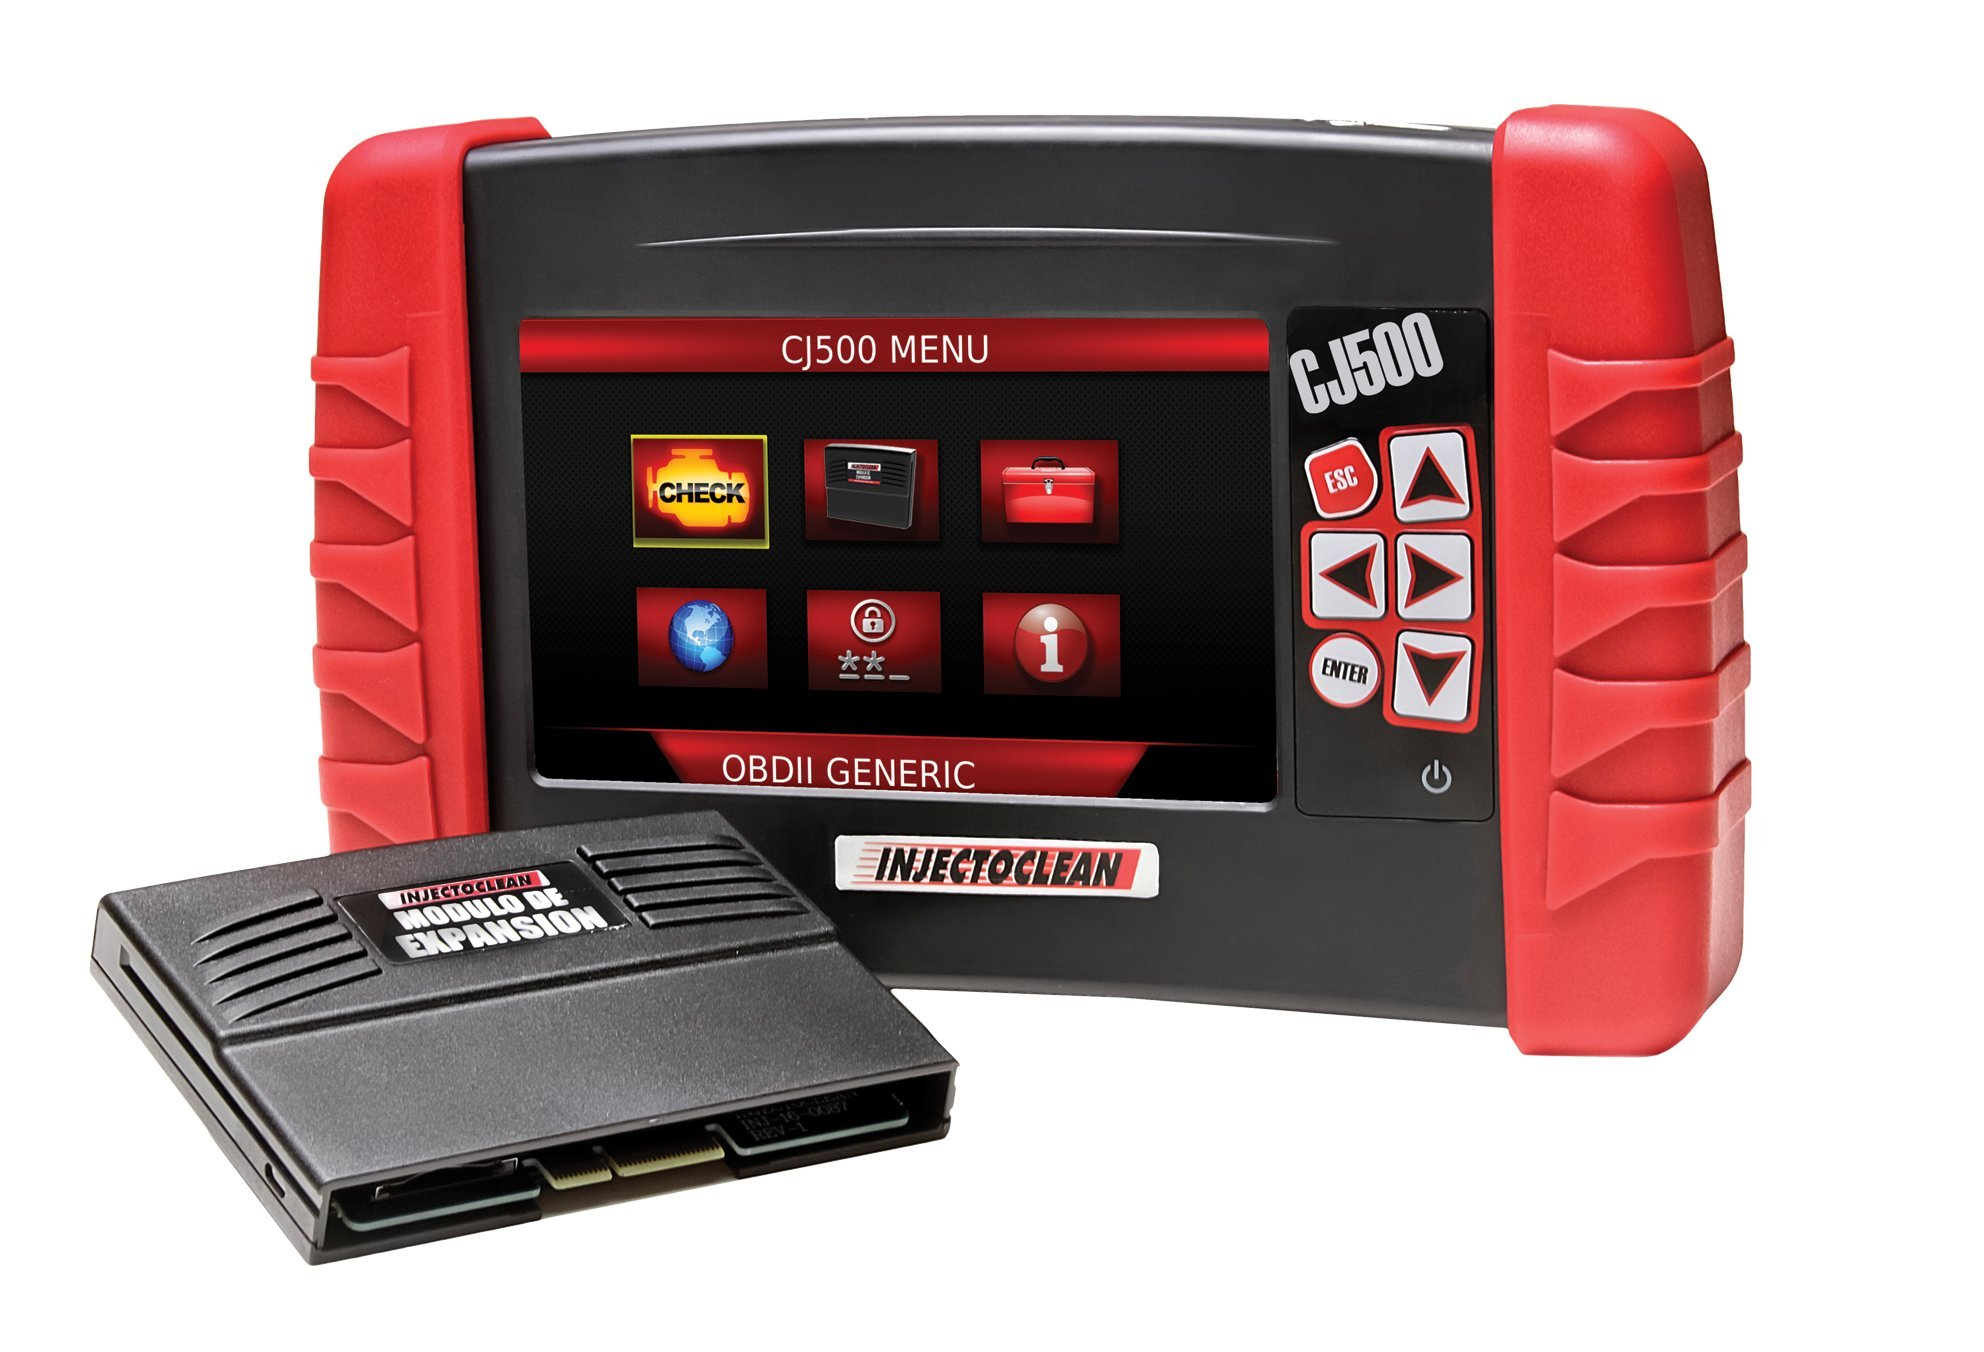 CJ500 Full Kit OBDII/CAN Automotive Diagnostic Scantool, with 2-Channel Labscope, Battery tester, Injector tester, & Extensive coverage